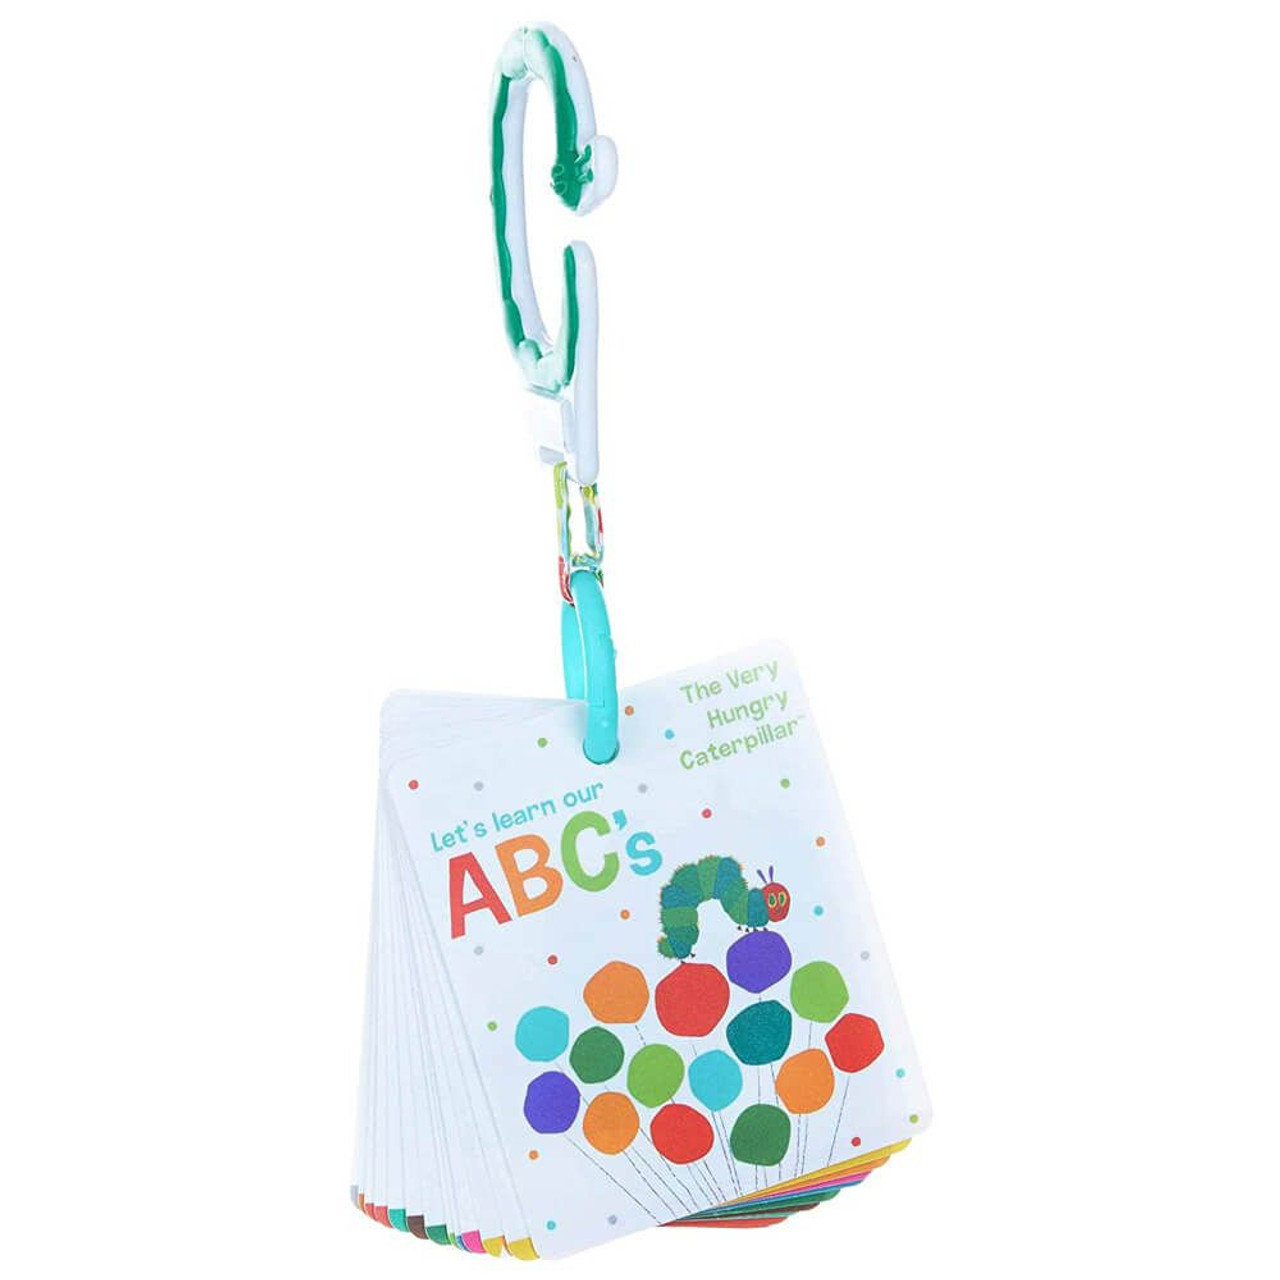 World of Eric Carle Alphabets Flashcards at Baby Barn Discounts Learning alphabets with this Eric Carle inspired waterproof double sided flashcards.